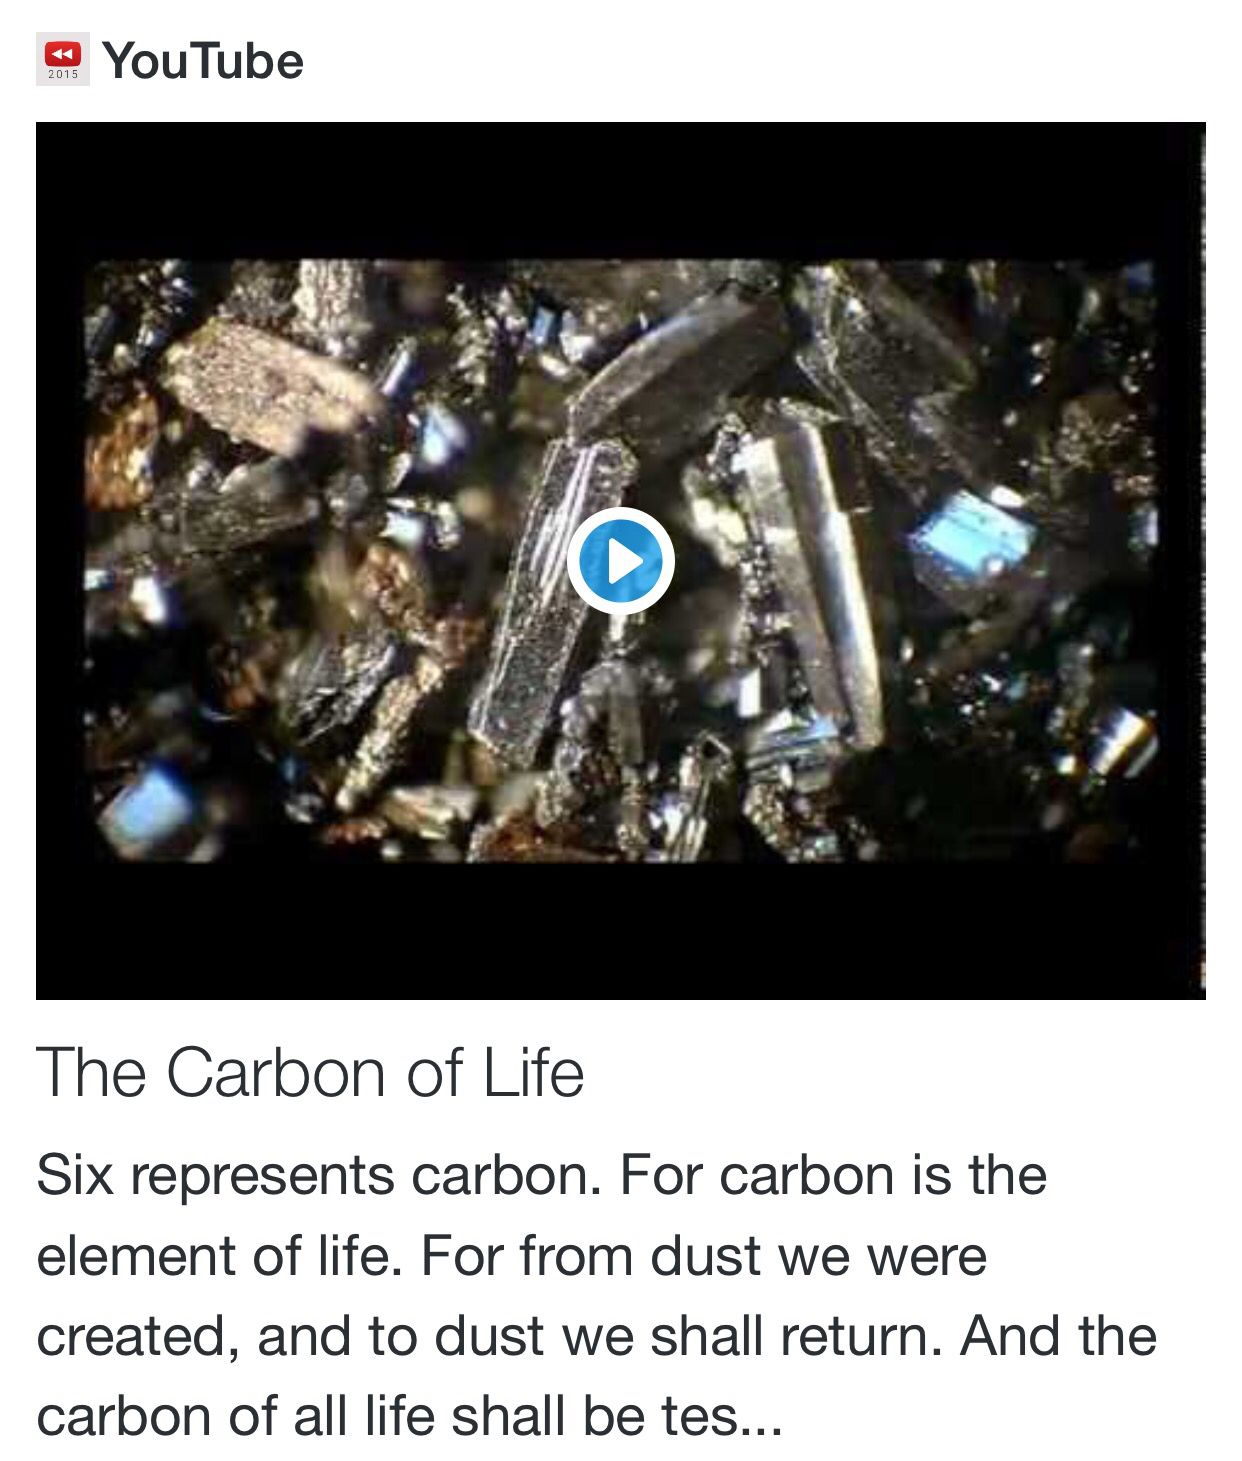 The Carbon of Life from Math and Numbers of the Prophecy http://www.andrewtheprophet.com/11022/136931.html